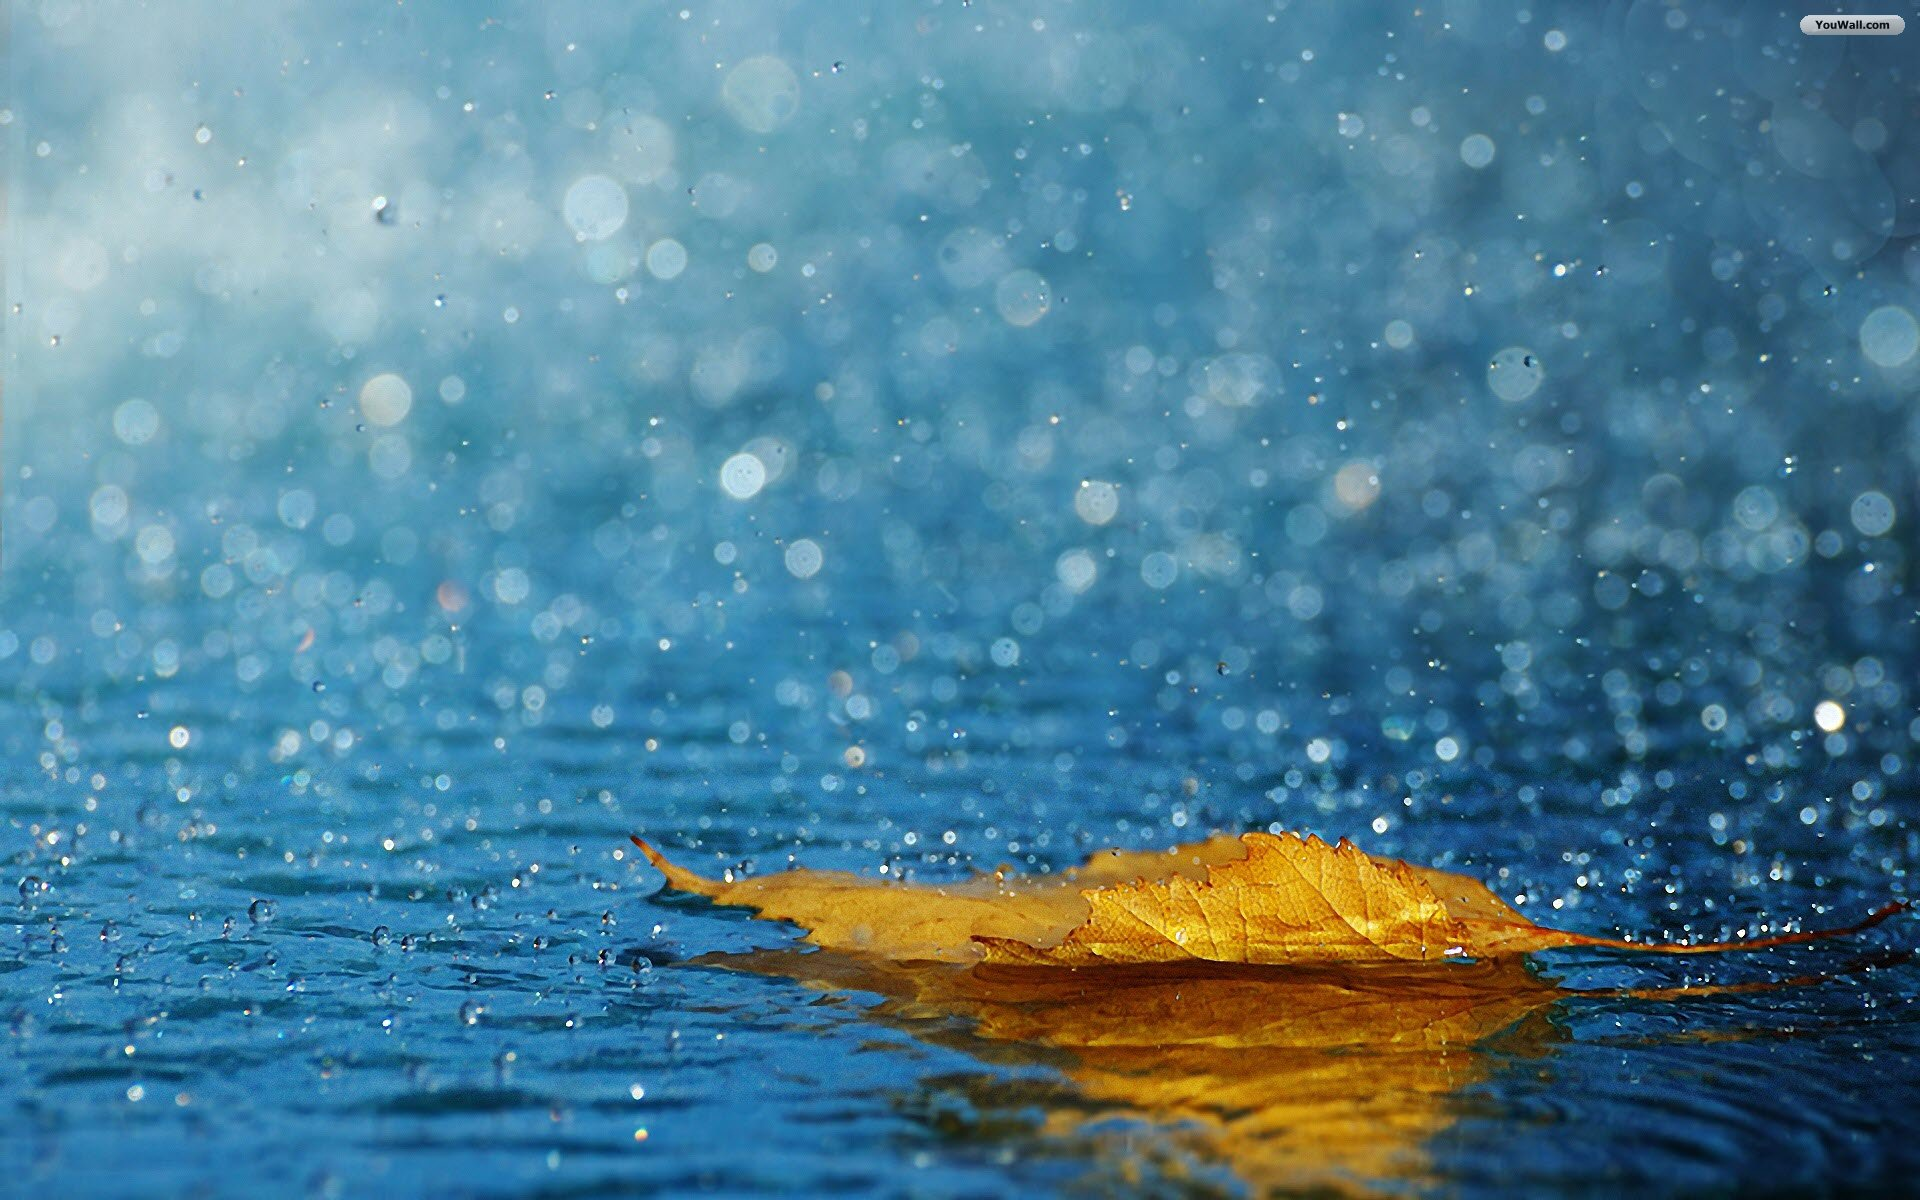 Leaf Rain Wallpaper HD wallpaper   Leaf Rain Wallpaper 1920x1200